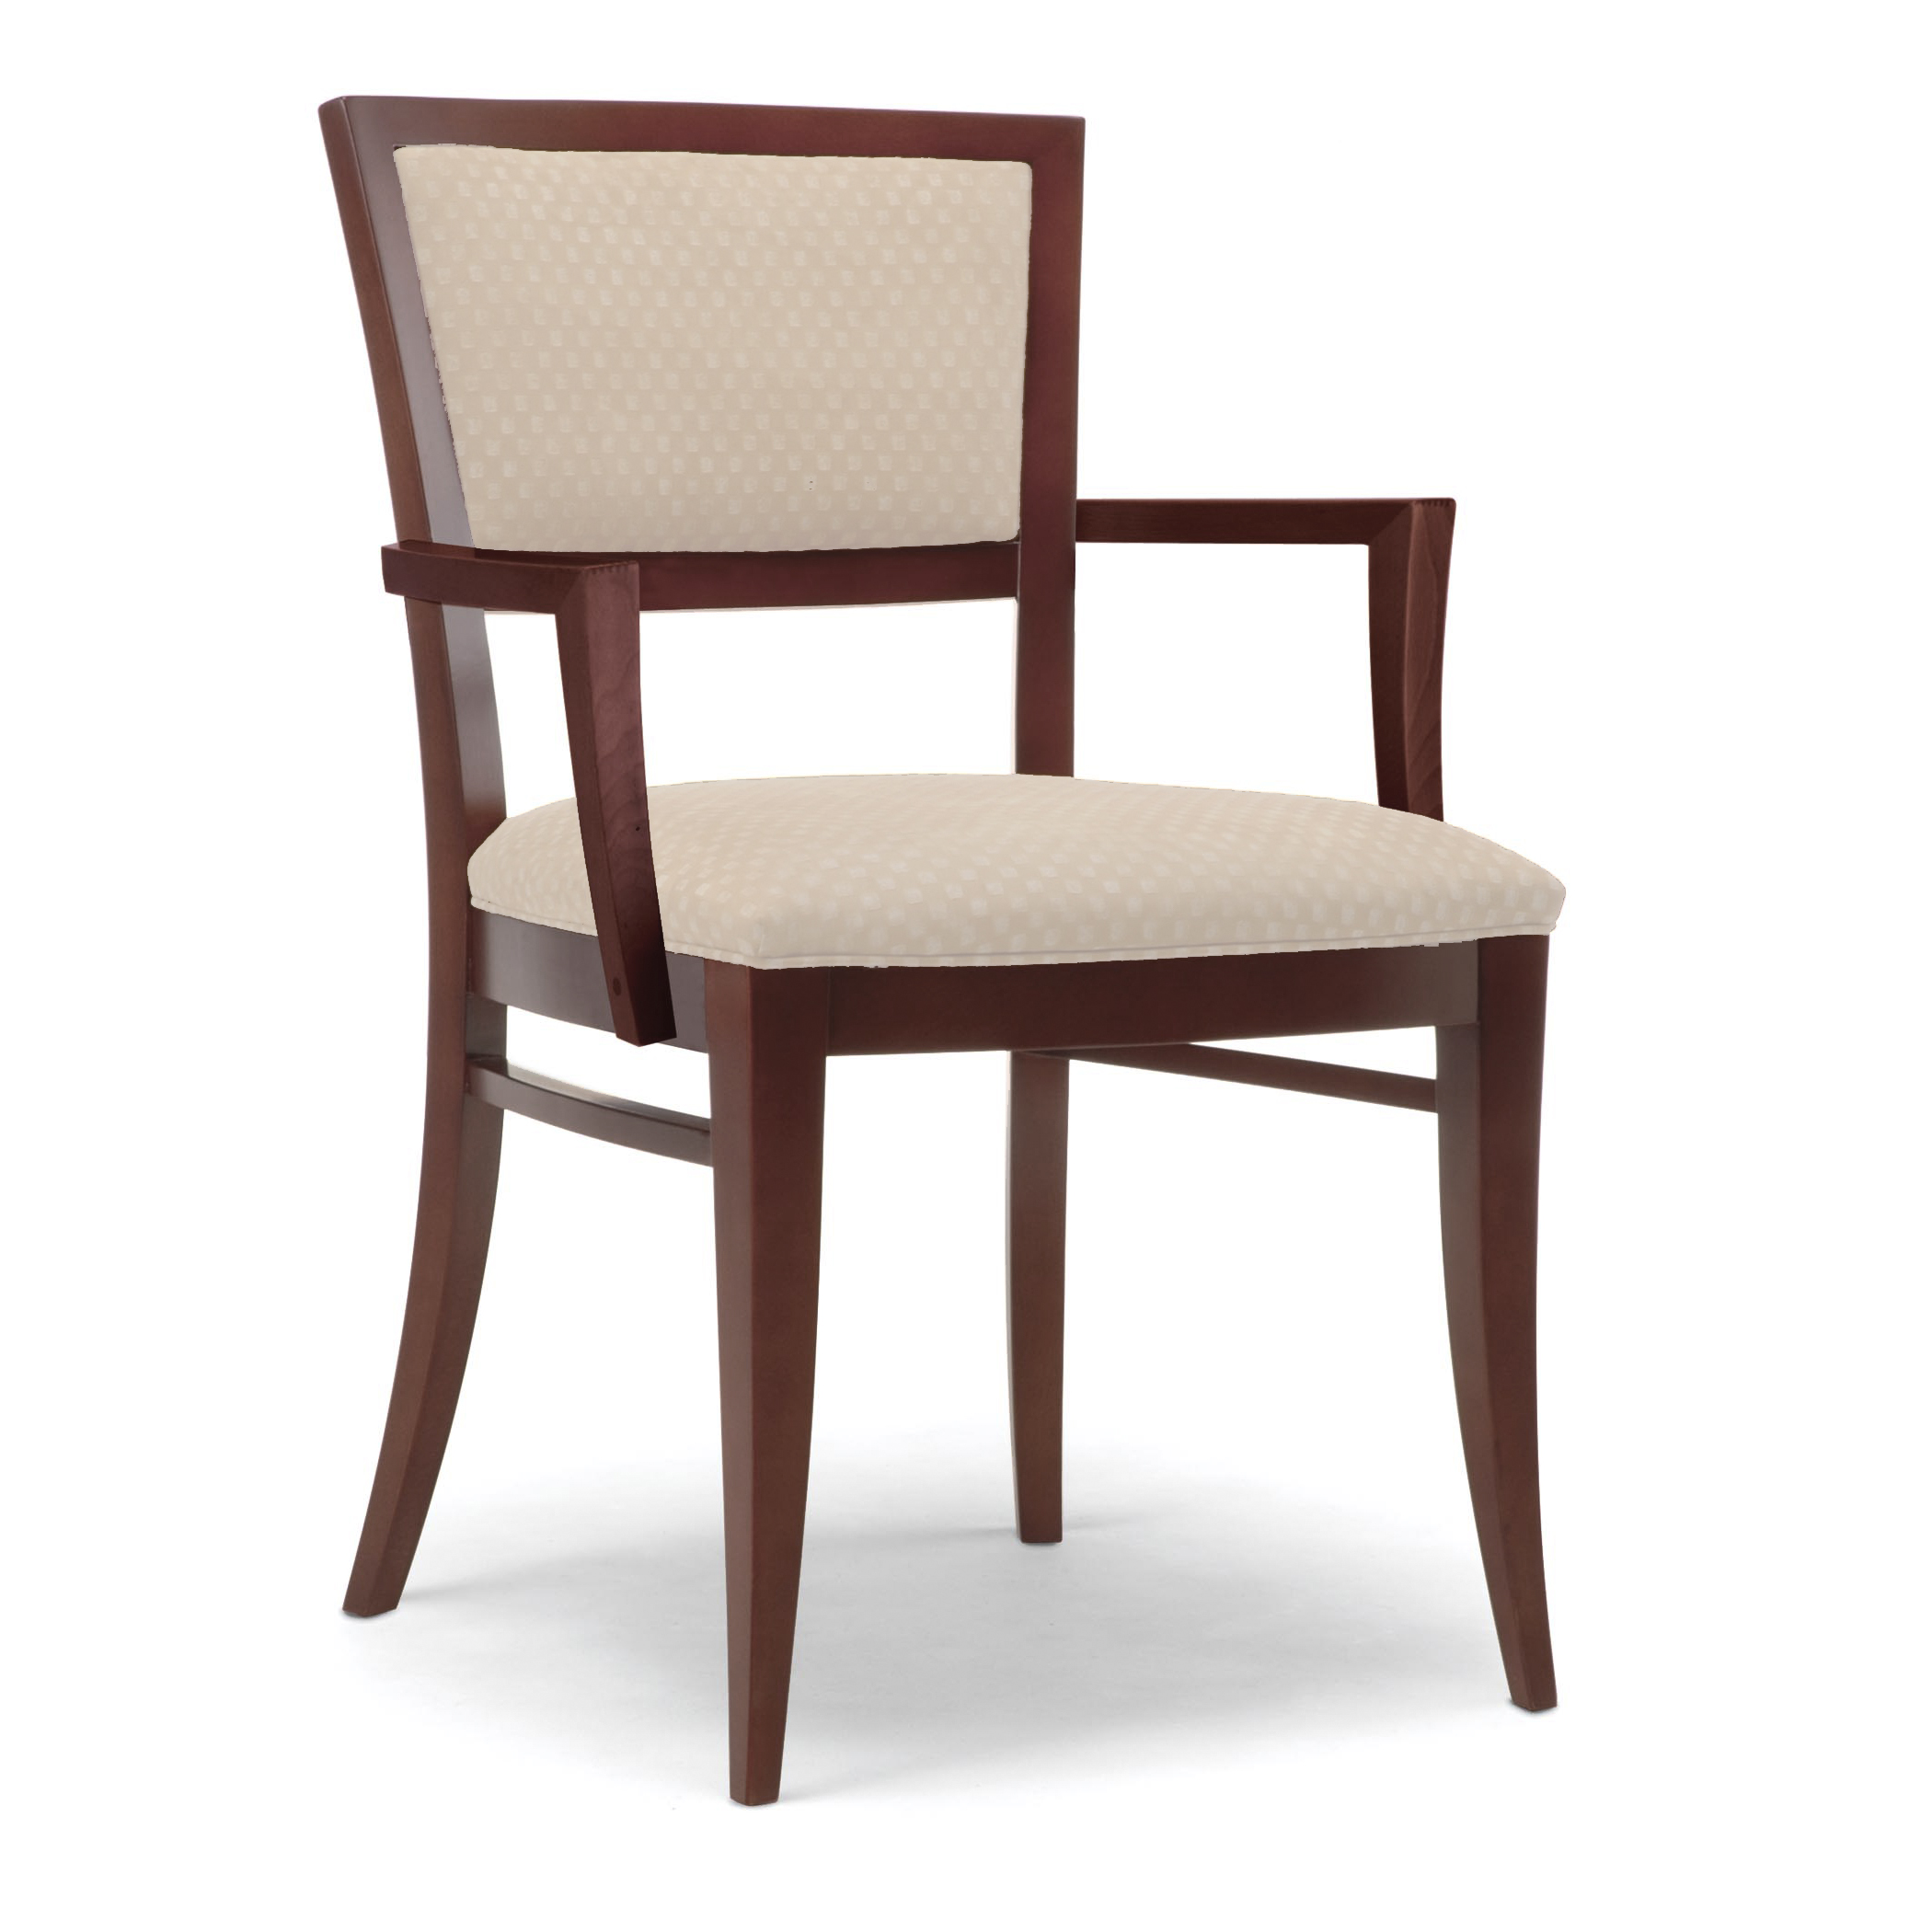 Wooden Arm Chair 4126 1 Wood Arm Chair